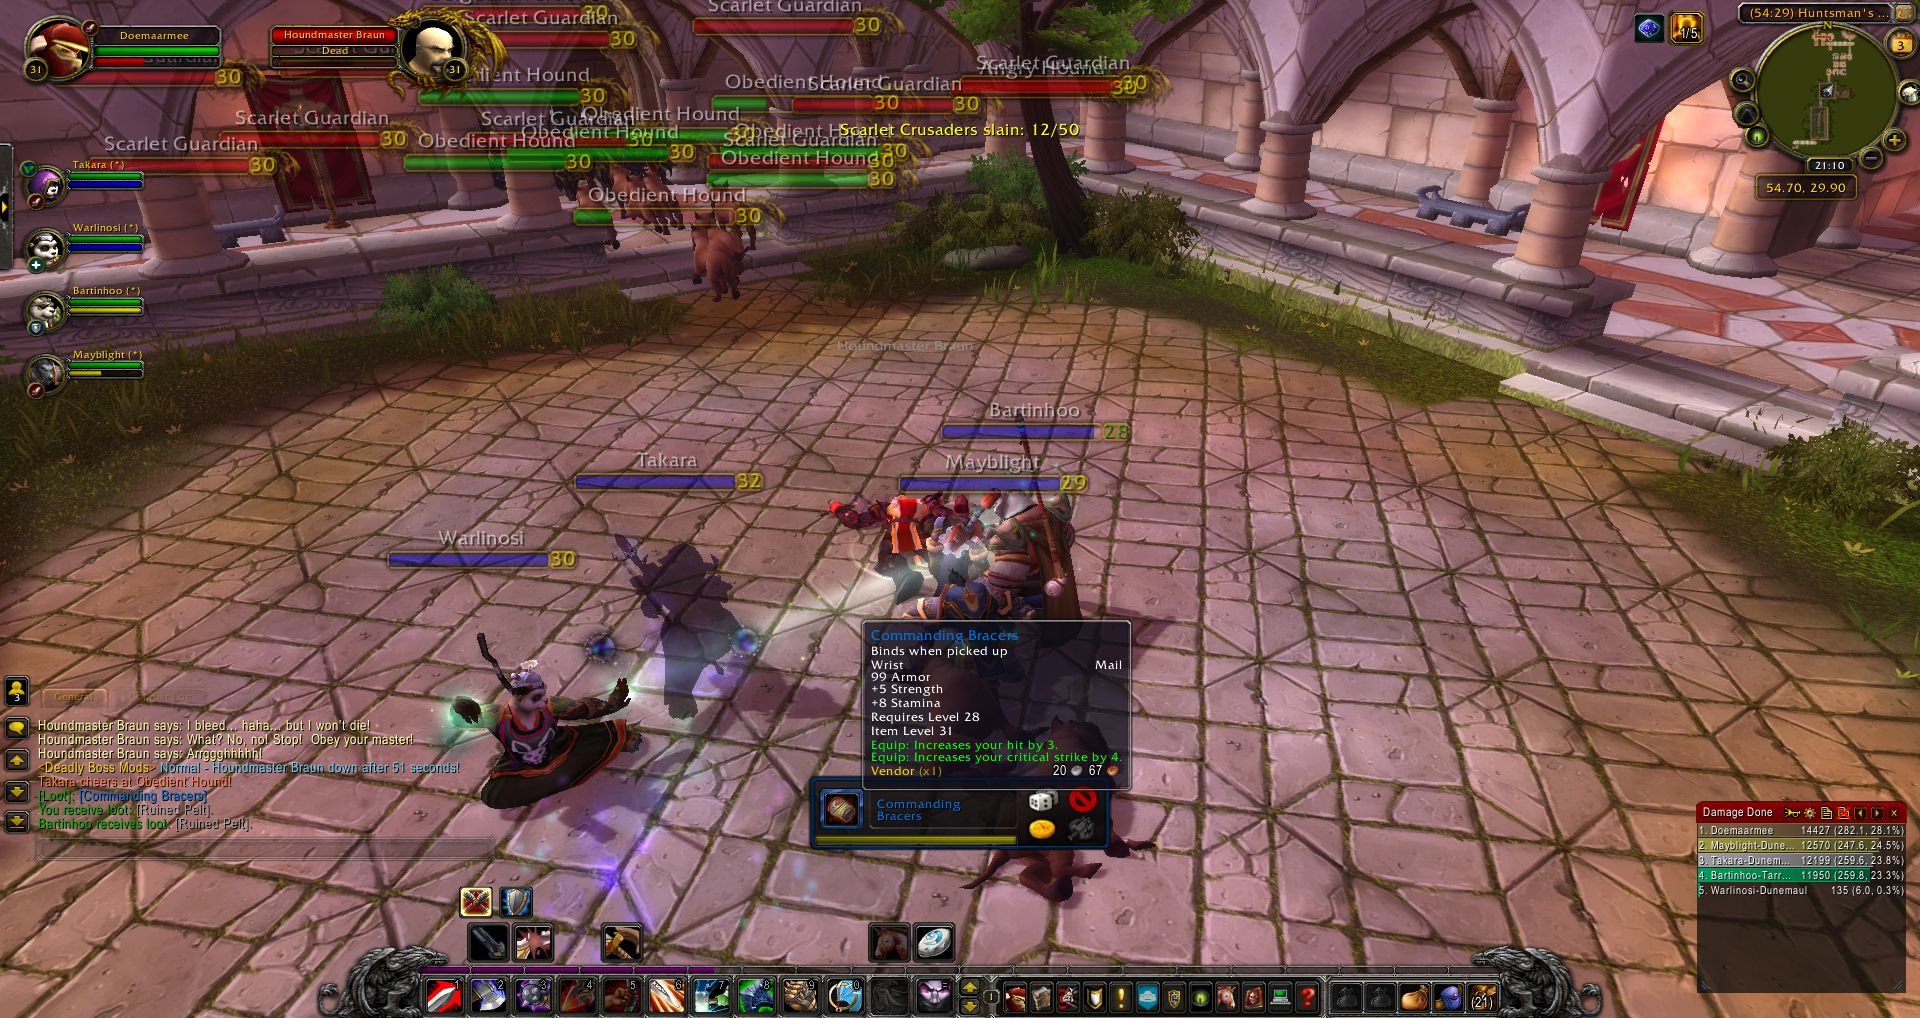 Houndmaster Braun Wow Screenshot